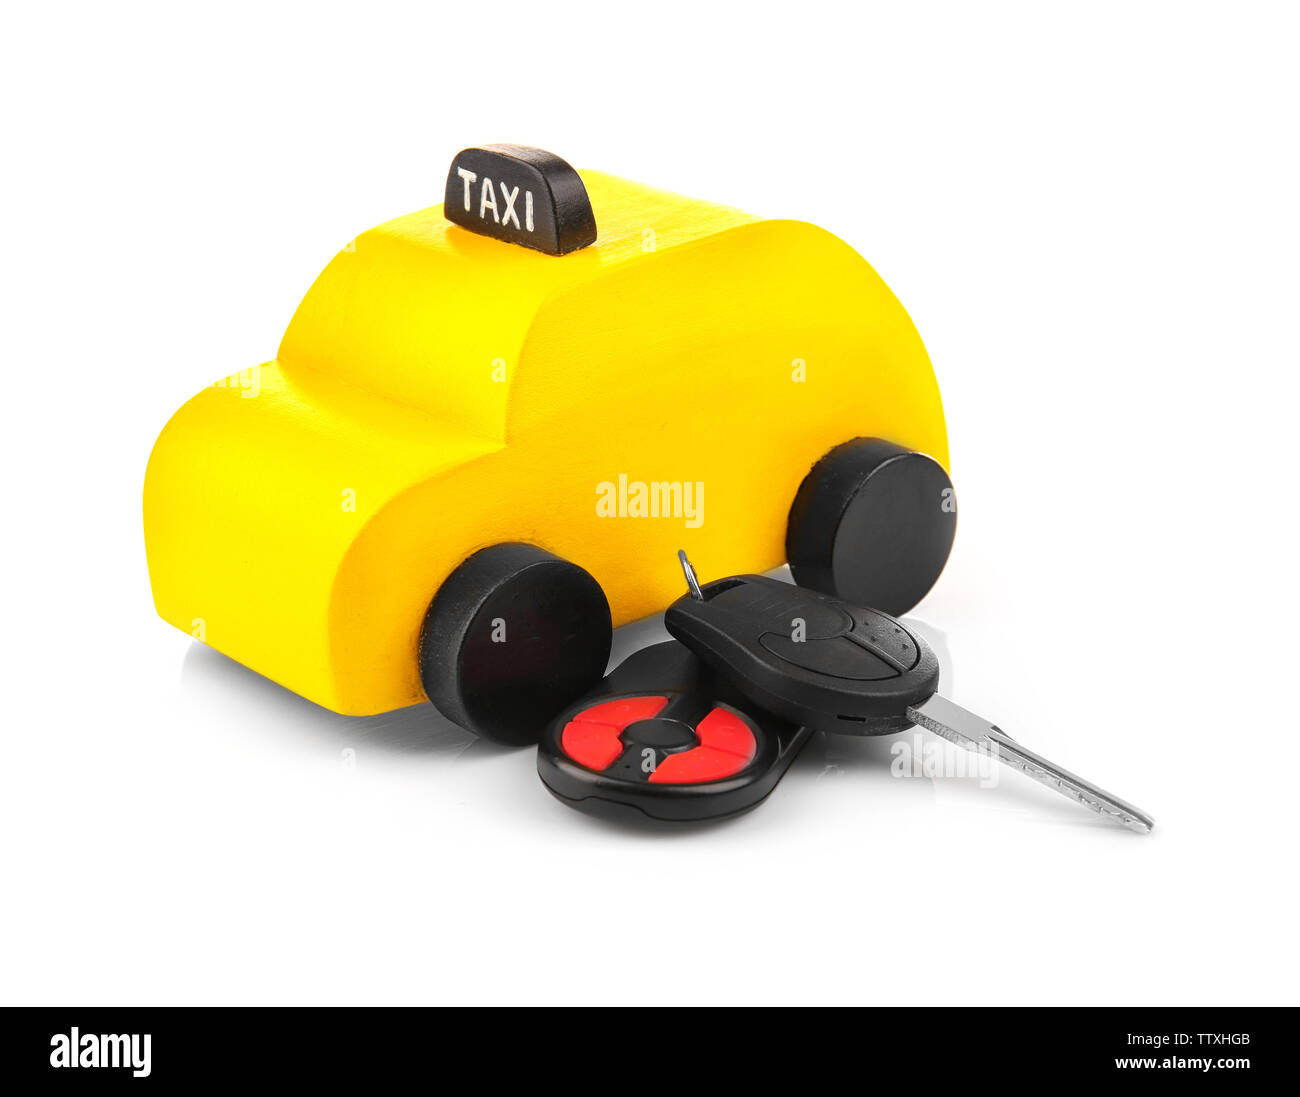 Yellow toy taxi with car key on white background - Stock Image